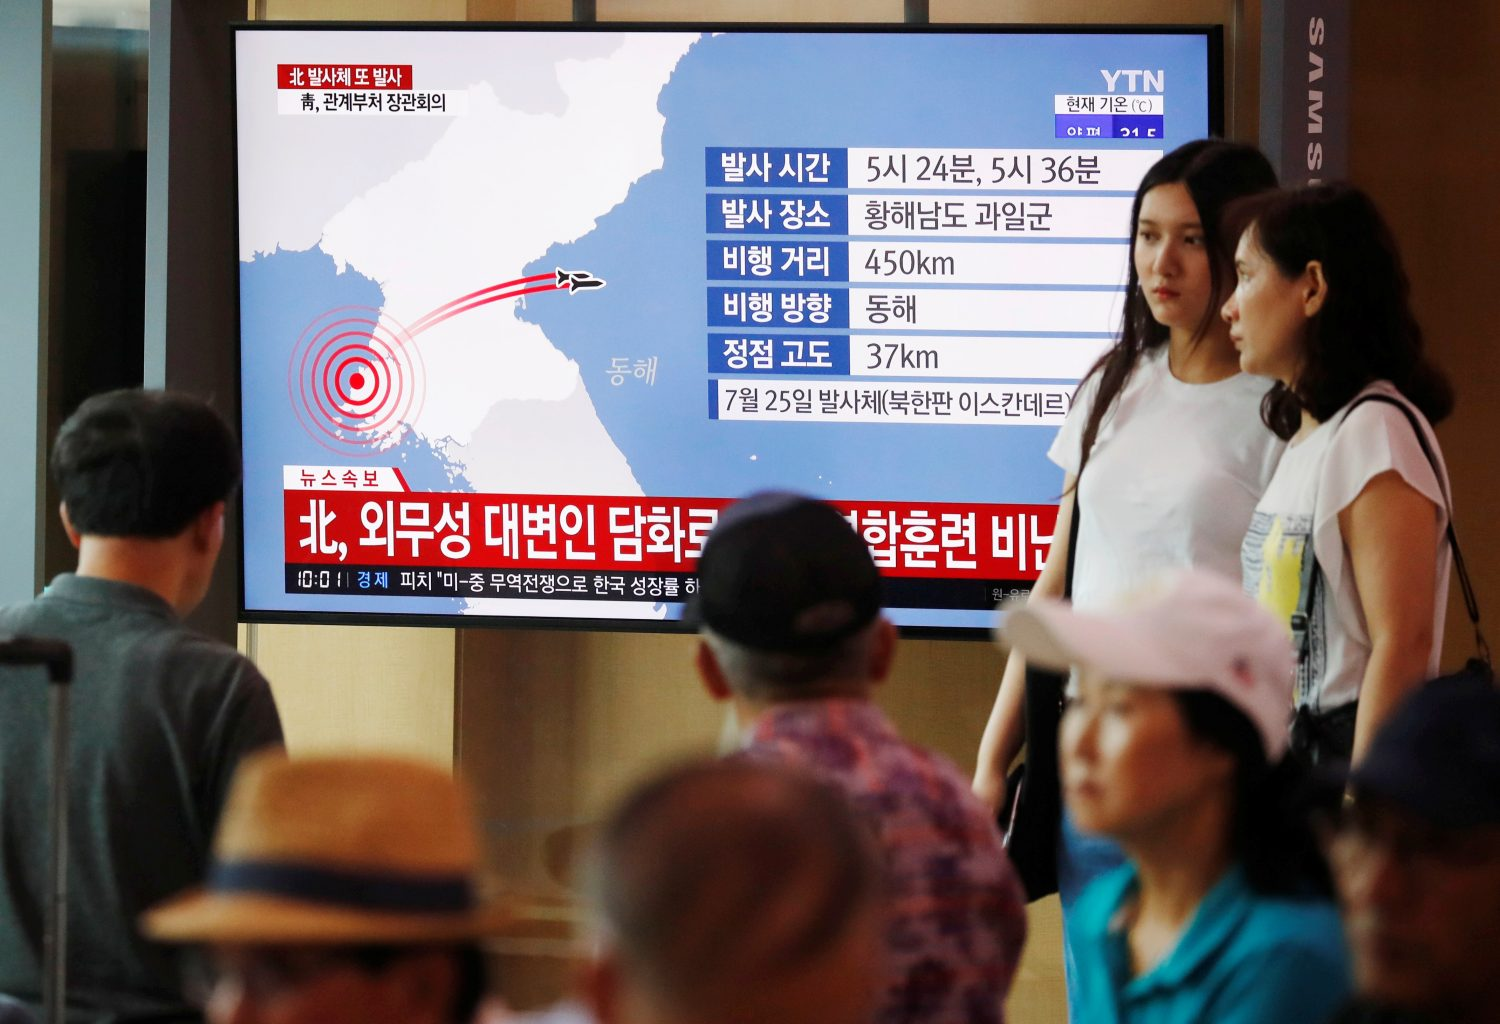 People watch a TV broadcasting a news report on North Korea firing two unidentified projectiles, in Seoul, South Korea, August 6, 2019. REUTERS/Kim Hong-Ji